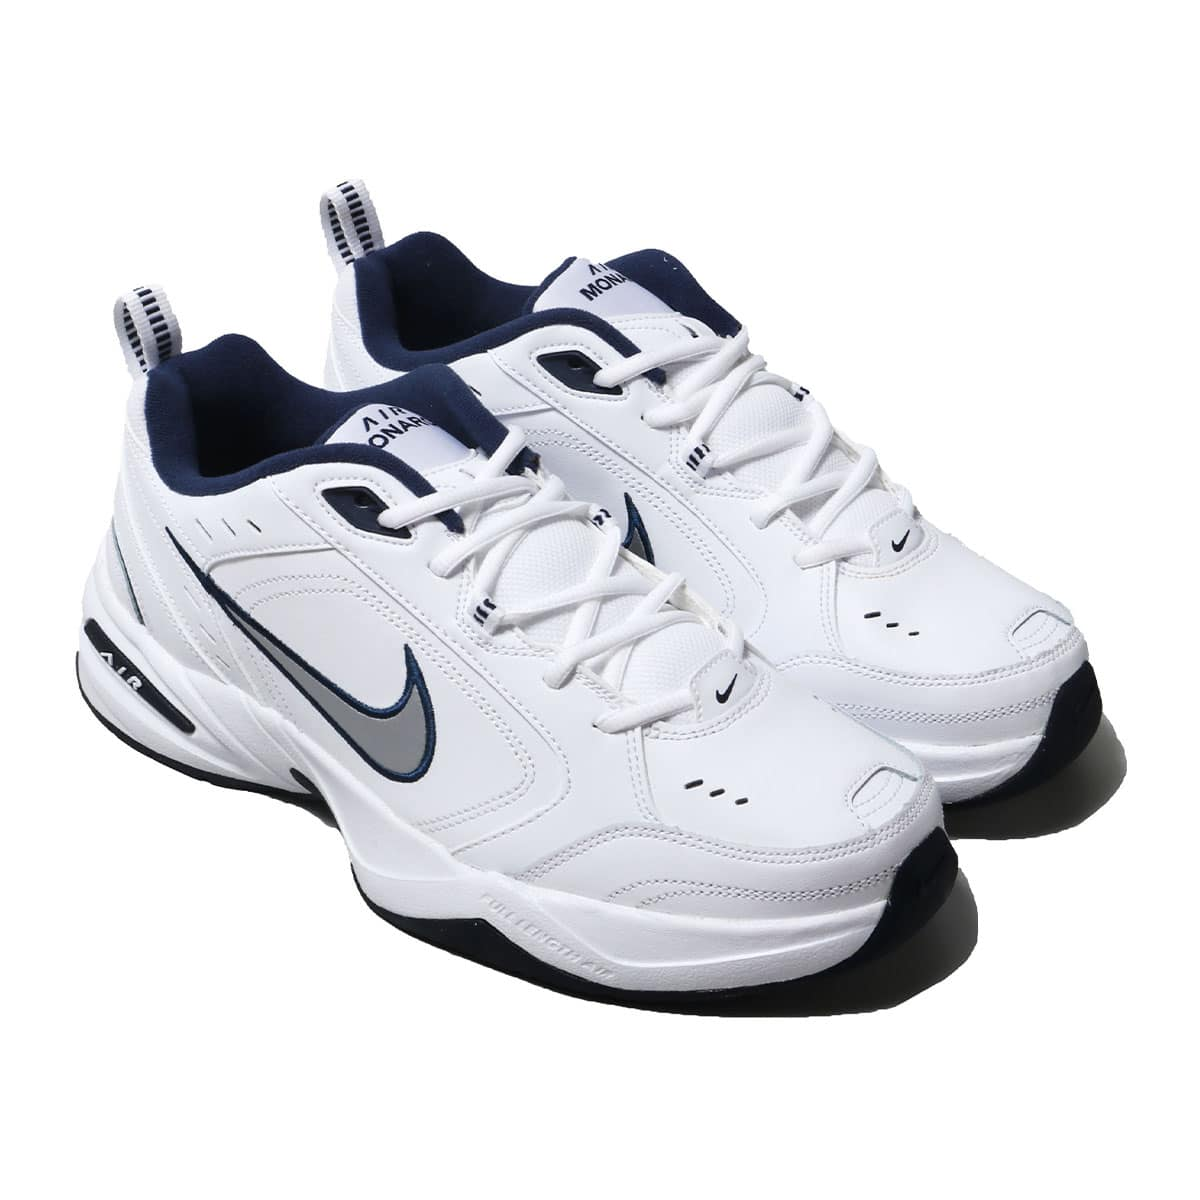 NIKE AIR MONARCH IV WHITE/METALLIC SILVER 18HO-I_photo_large